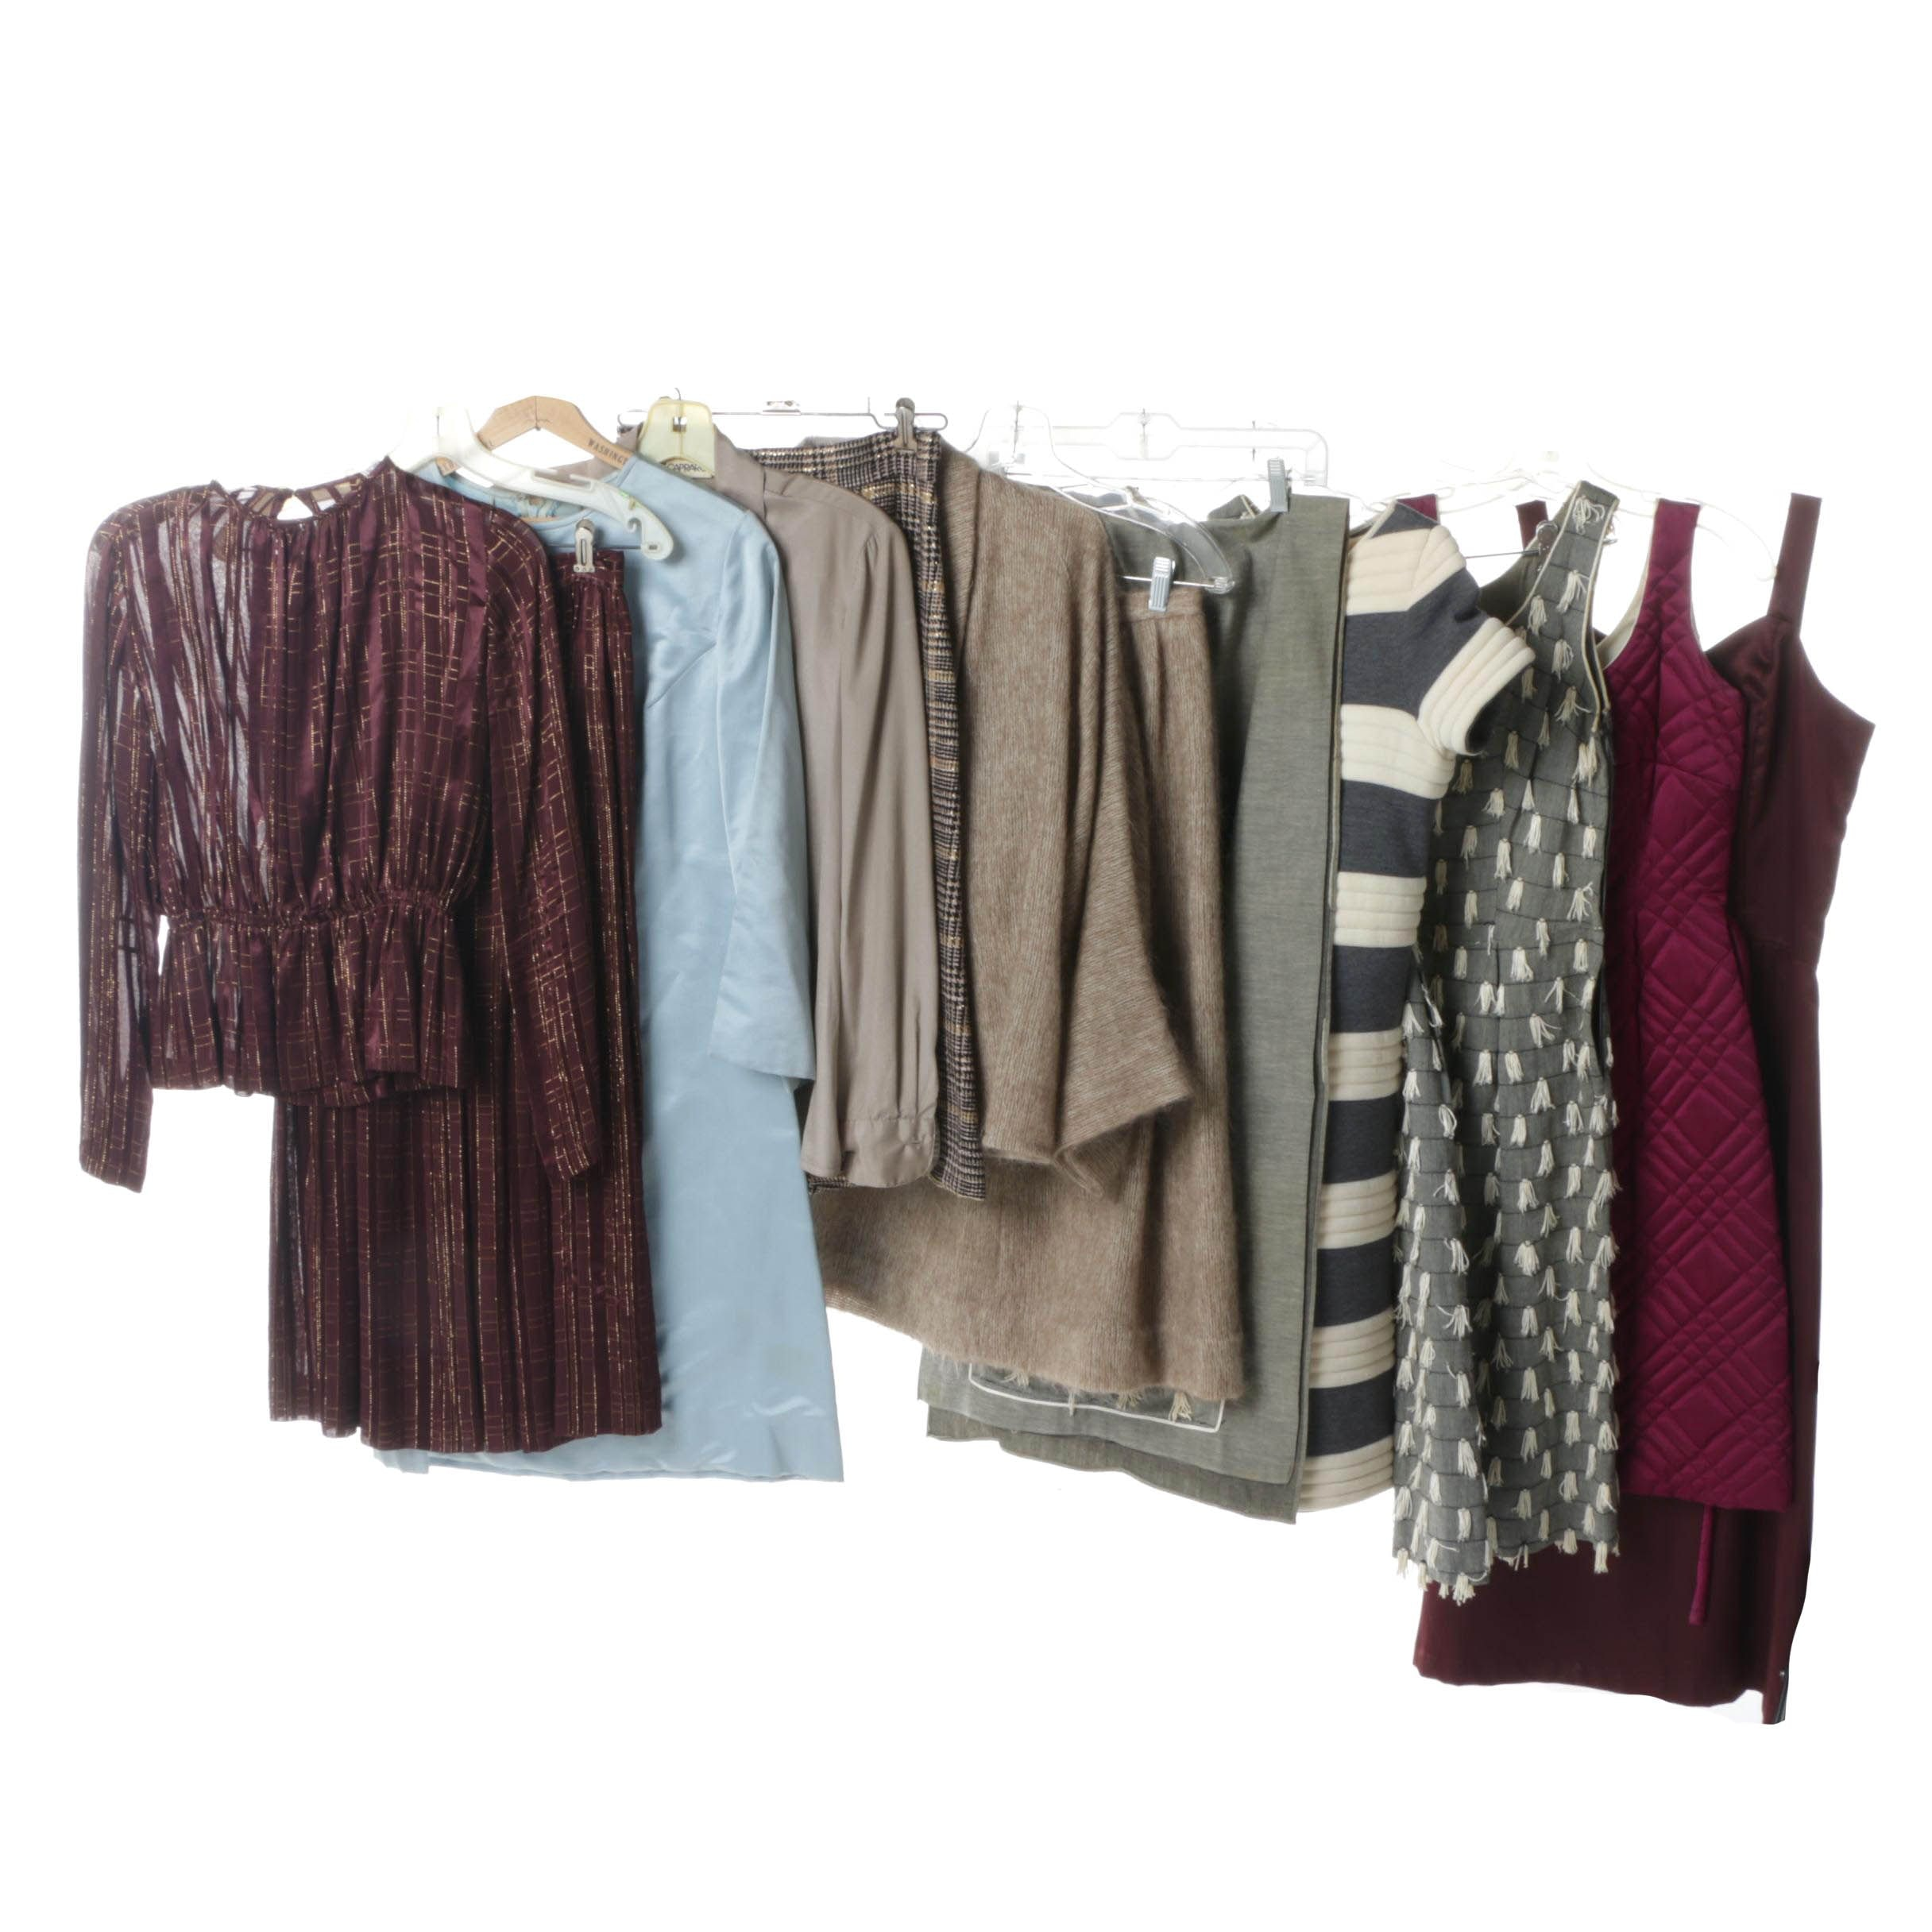 Women's Vintage Separates and Dresses Including Monte Streitfield